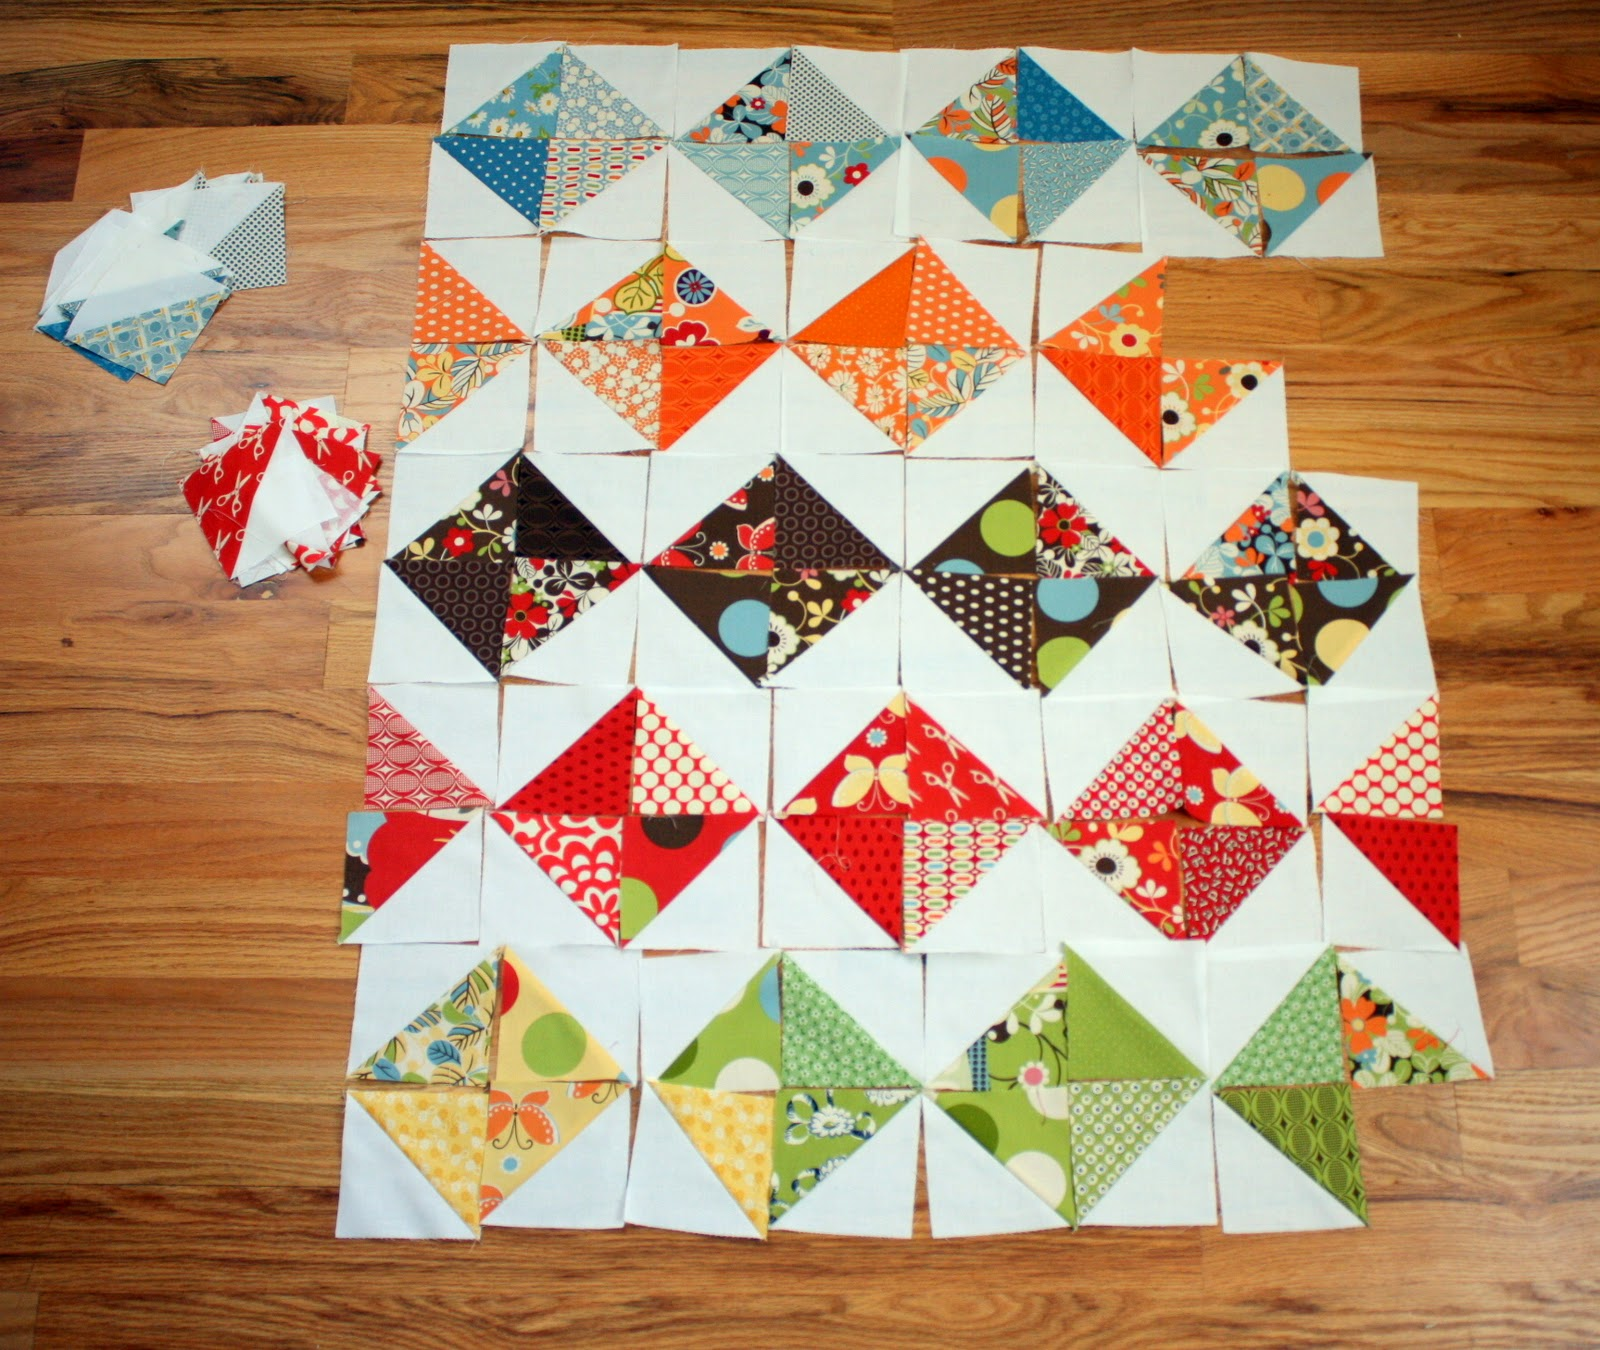 Quilt Patterns Using Squares And Triangles : Playing with Half-Square Triangles - Diary of a Quilter - a quilt blog